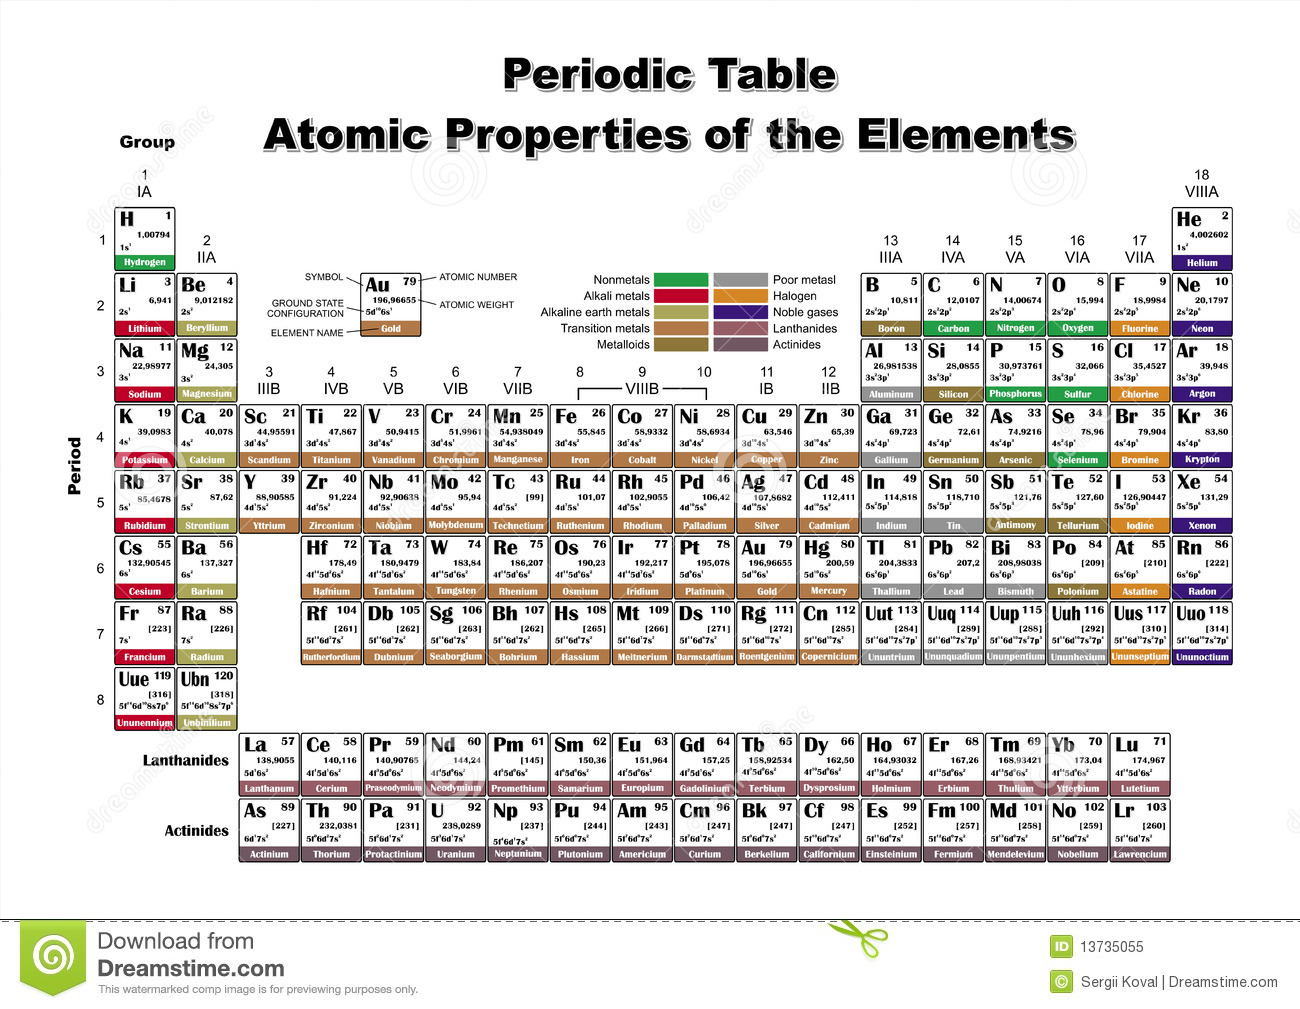 Periodic table atomic properties of the elements royalty free royalty free stock photo download periodic table atomic properties of the elements gamestrikefo Choice Image